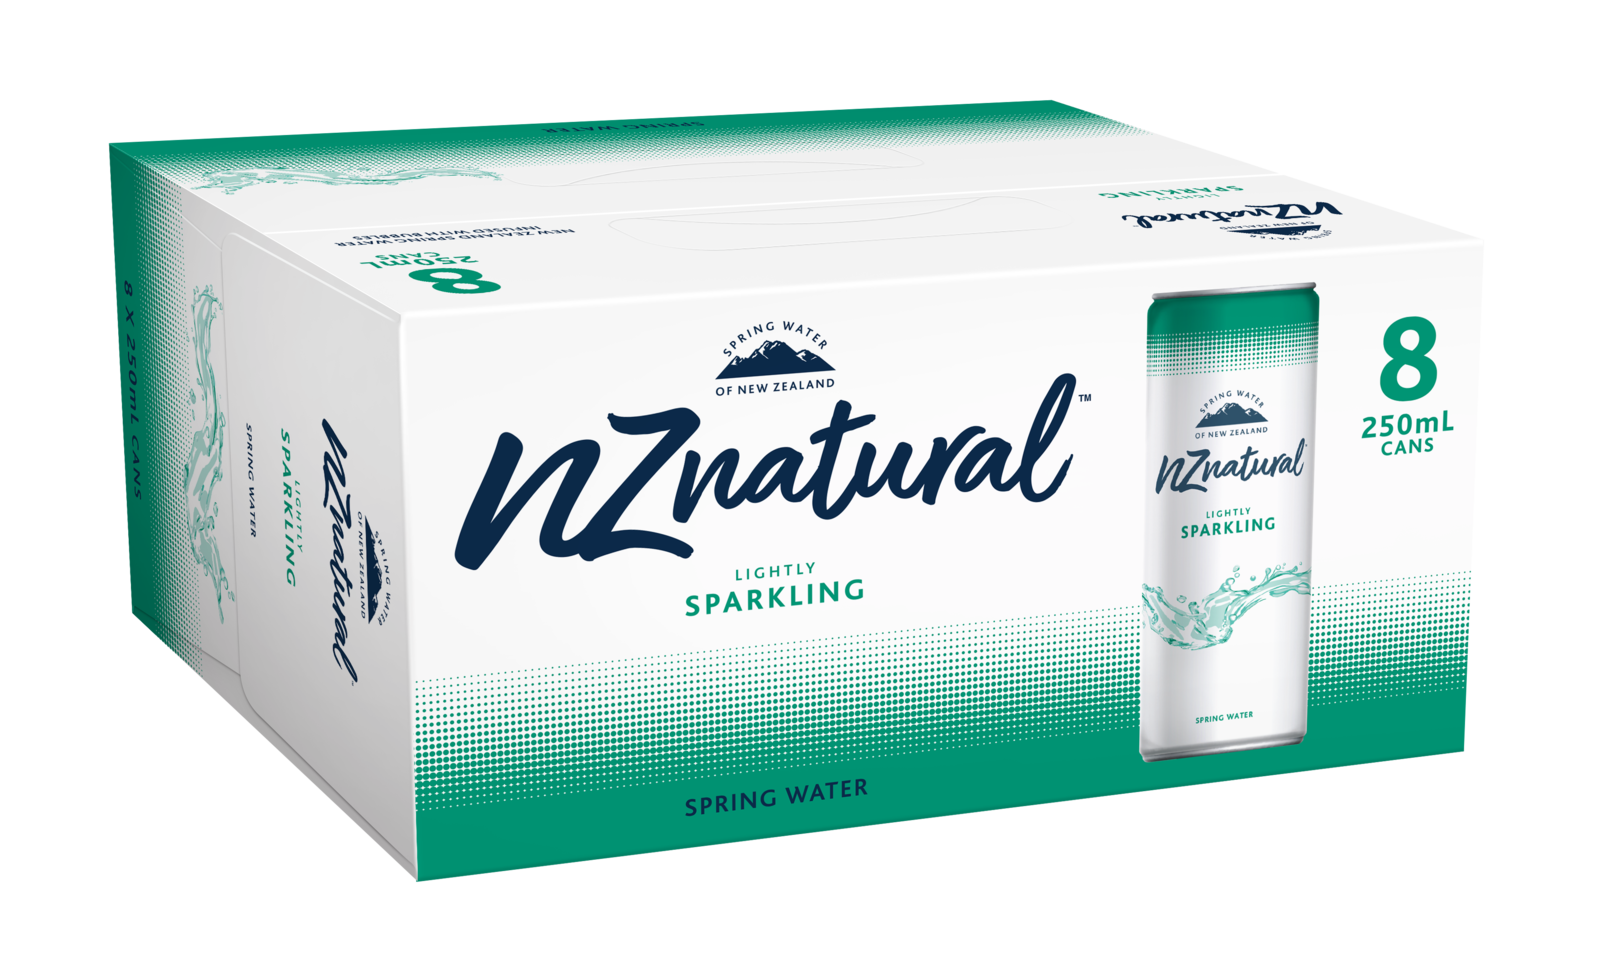 NZ Natural 250ml Sparkling Spring Water Cans (8 Pack) image